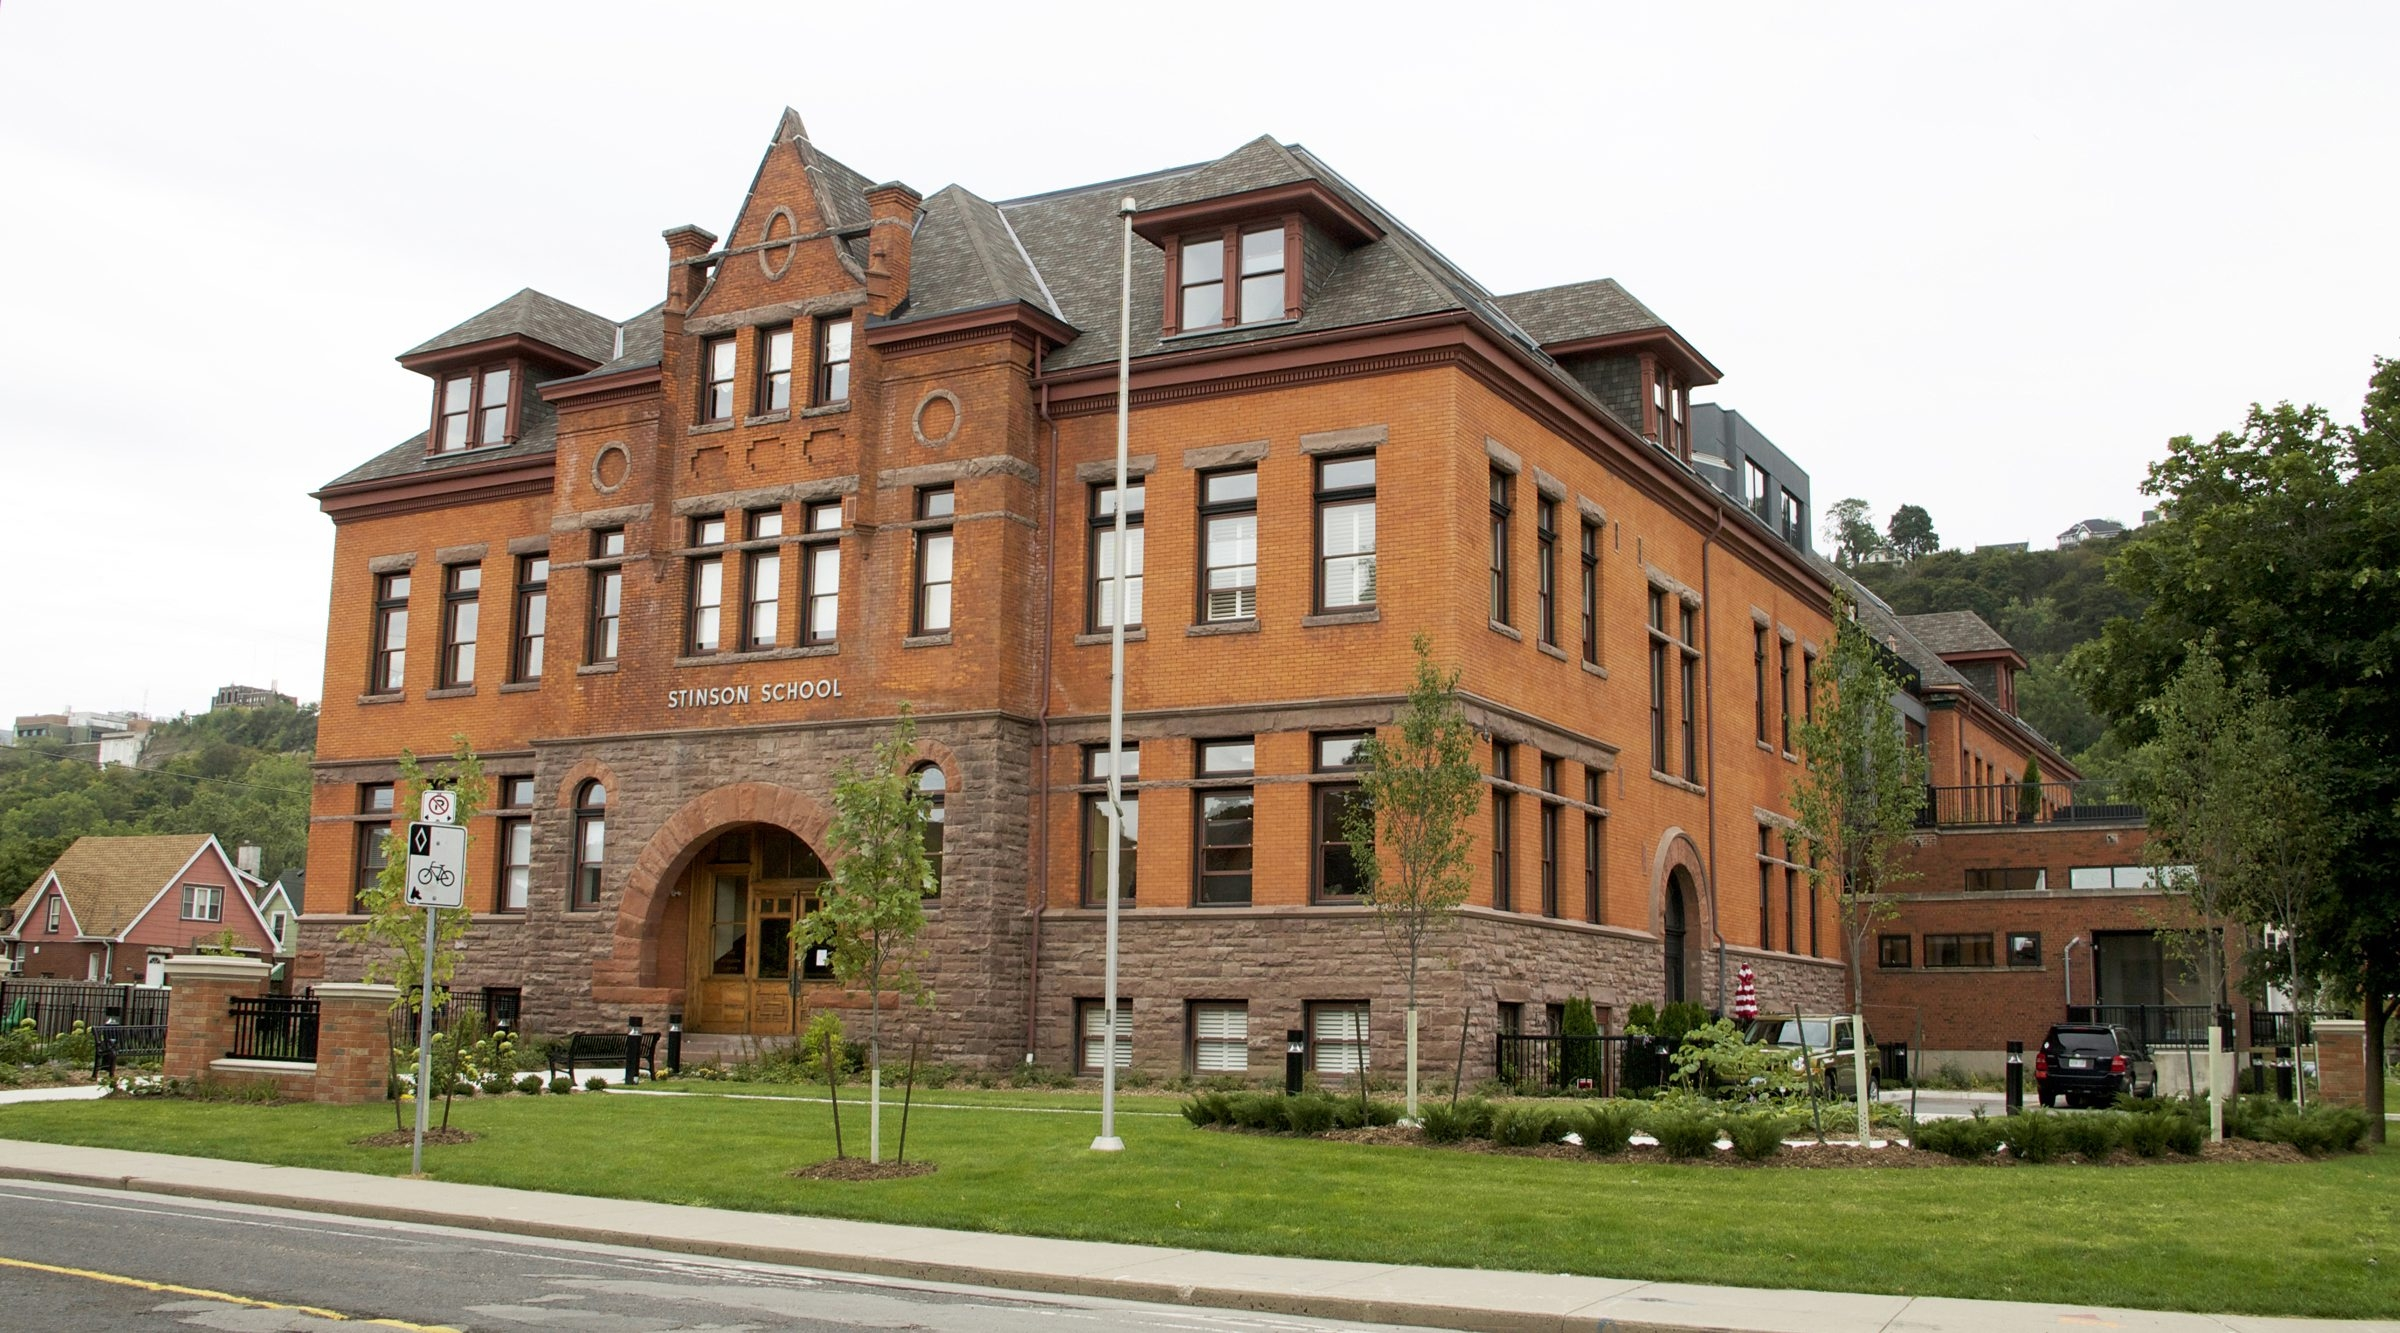 Harry Stinson converted the Stinson School in Hamilton, Ont., into condominiums. The project was completed in December 2013.